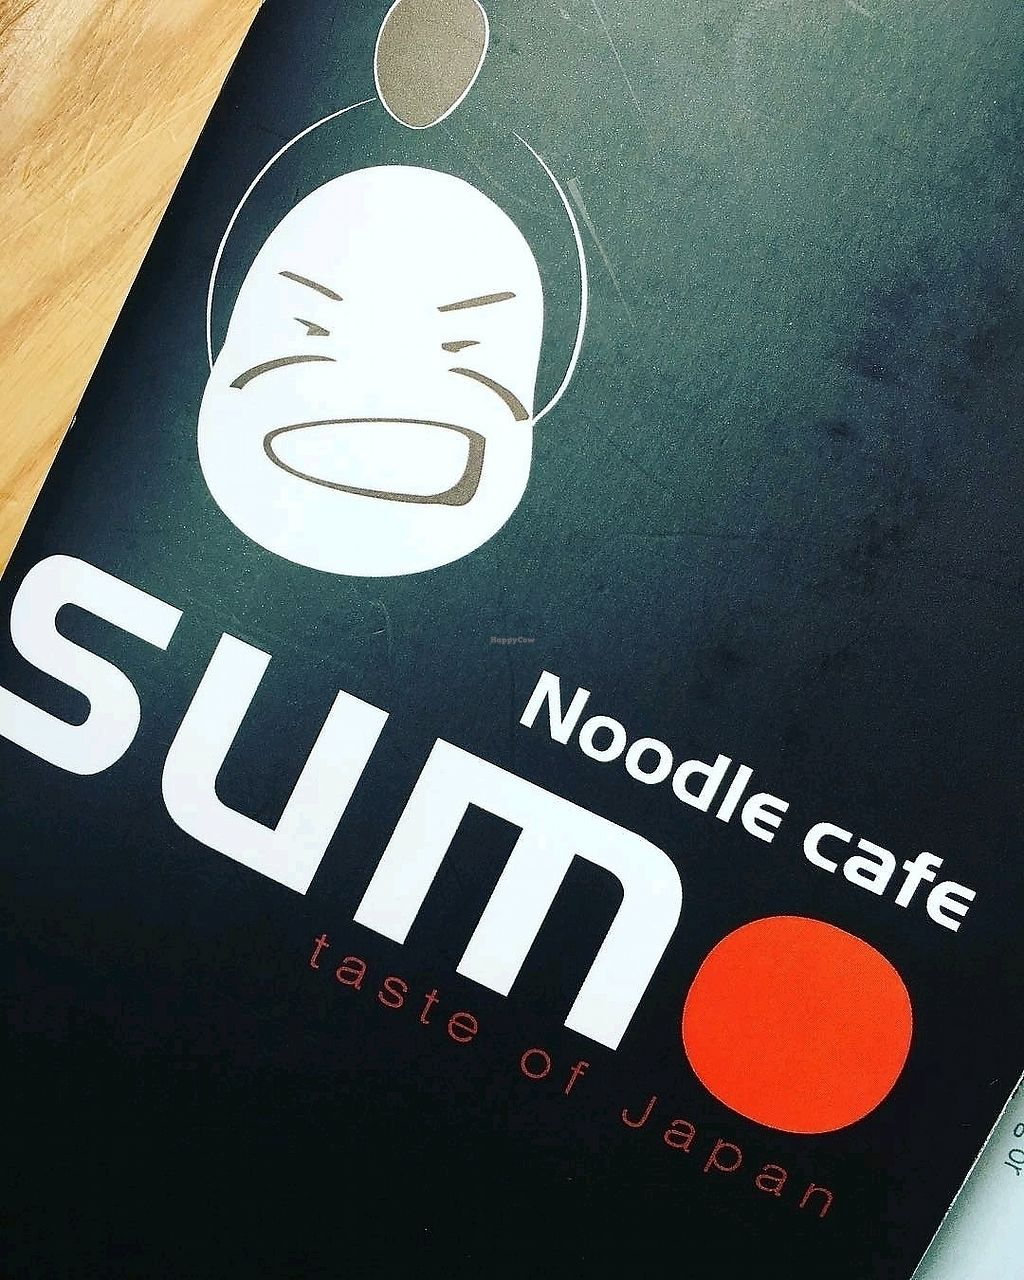 """Photo of Sumo Noodle Cafe  by <a href=""""/members/profile/craigmc"""">craigmc</a> <br/>yep <br/> March 25, 2018  - <a href='/contact/abuse/image/111074/376086'>Report</a>"""